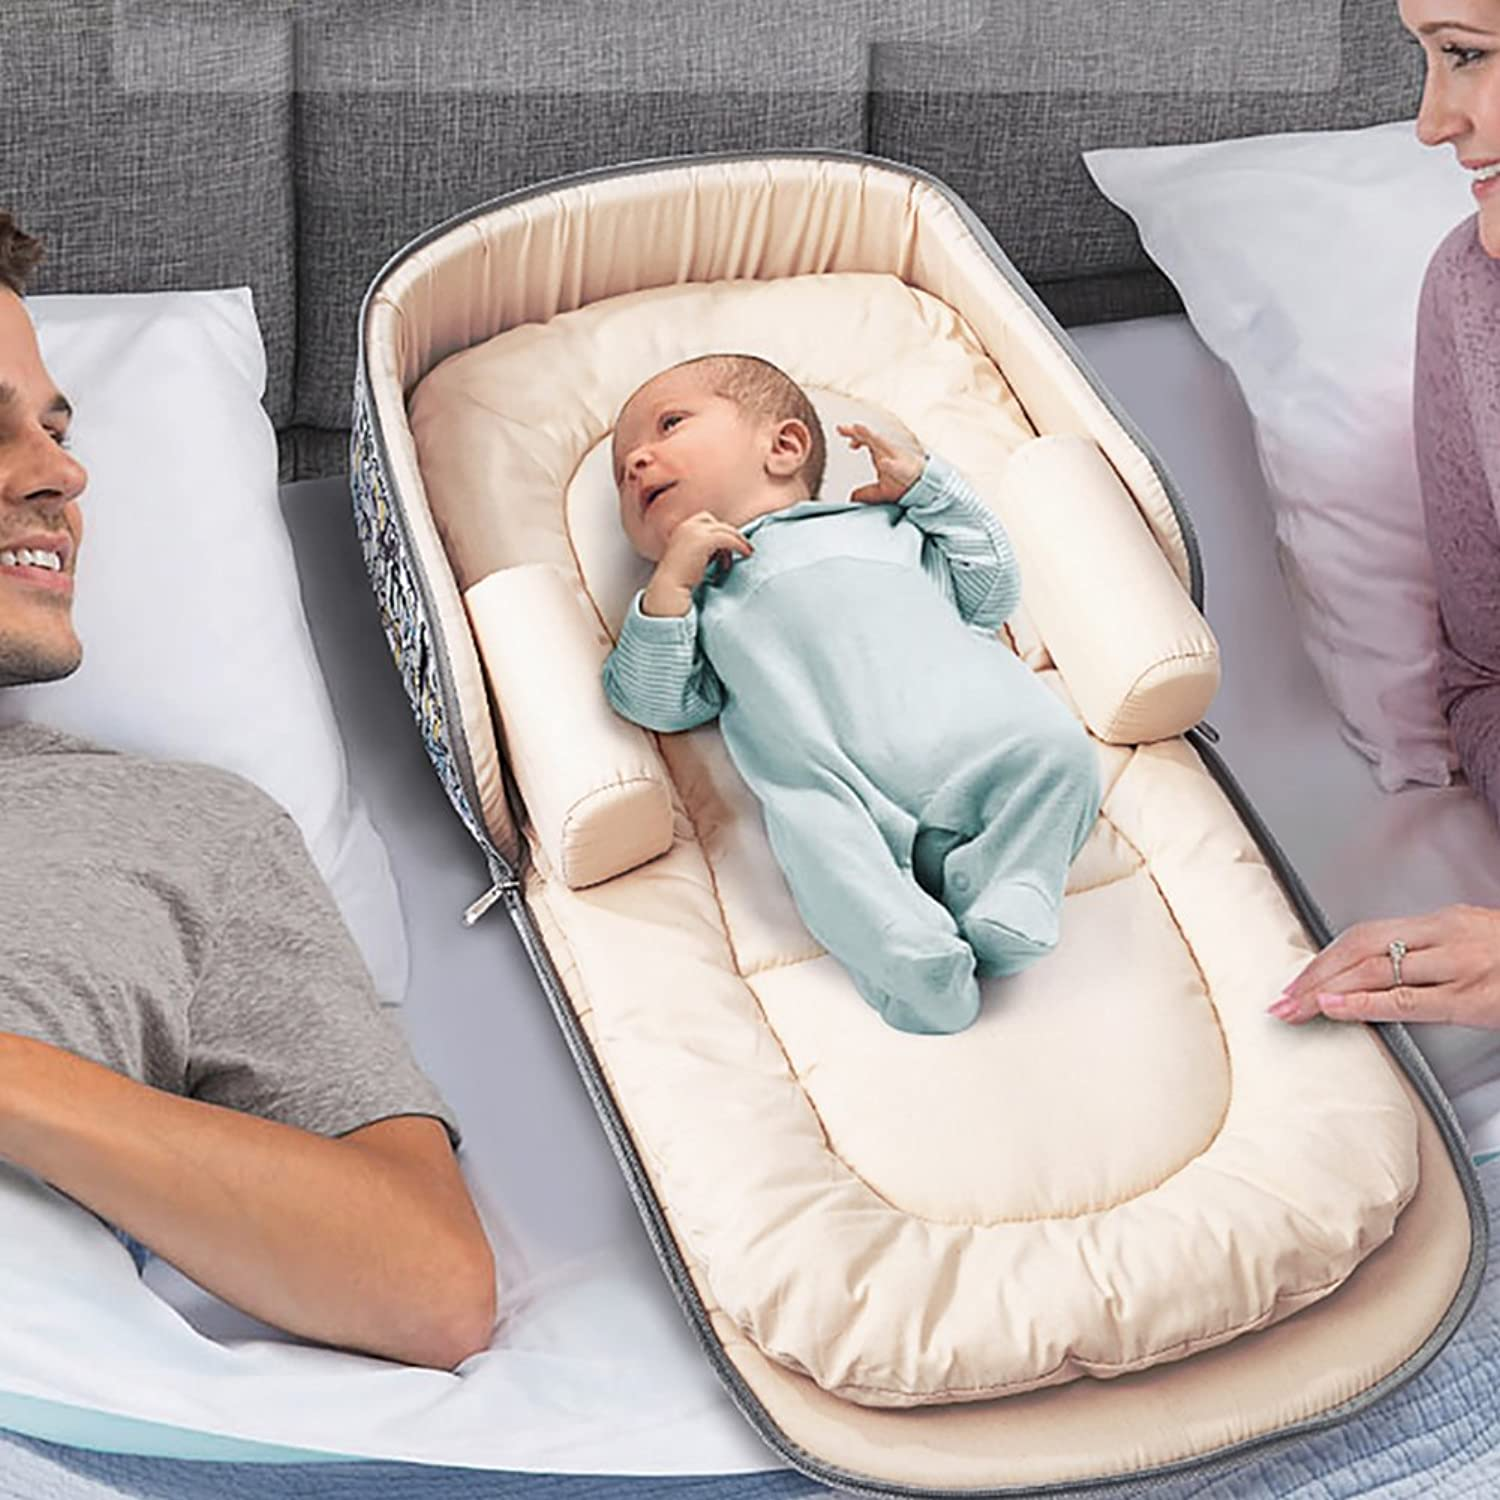 Aik@ Portable Foldable Baby Cribs Co-sleeping,Toddler Nest Baby Bed Travel Bed 100% Cotton Hypoallergenic Breathable Suitable For 0-1year Baby-C